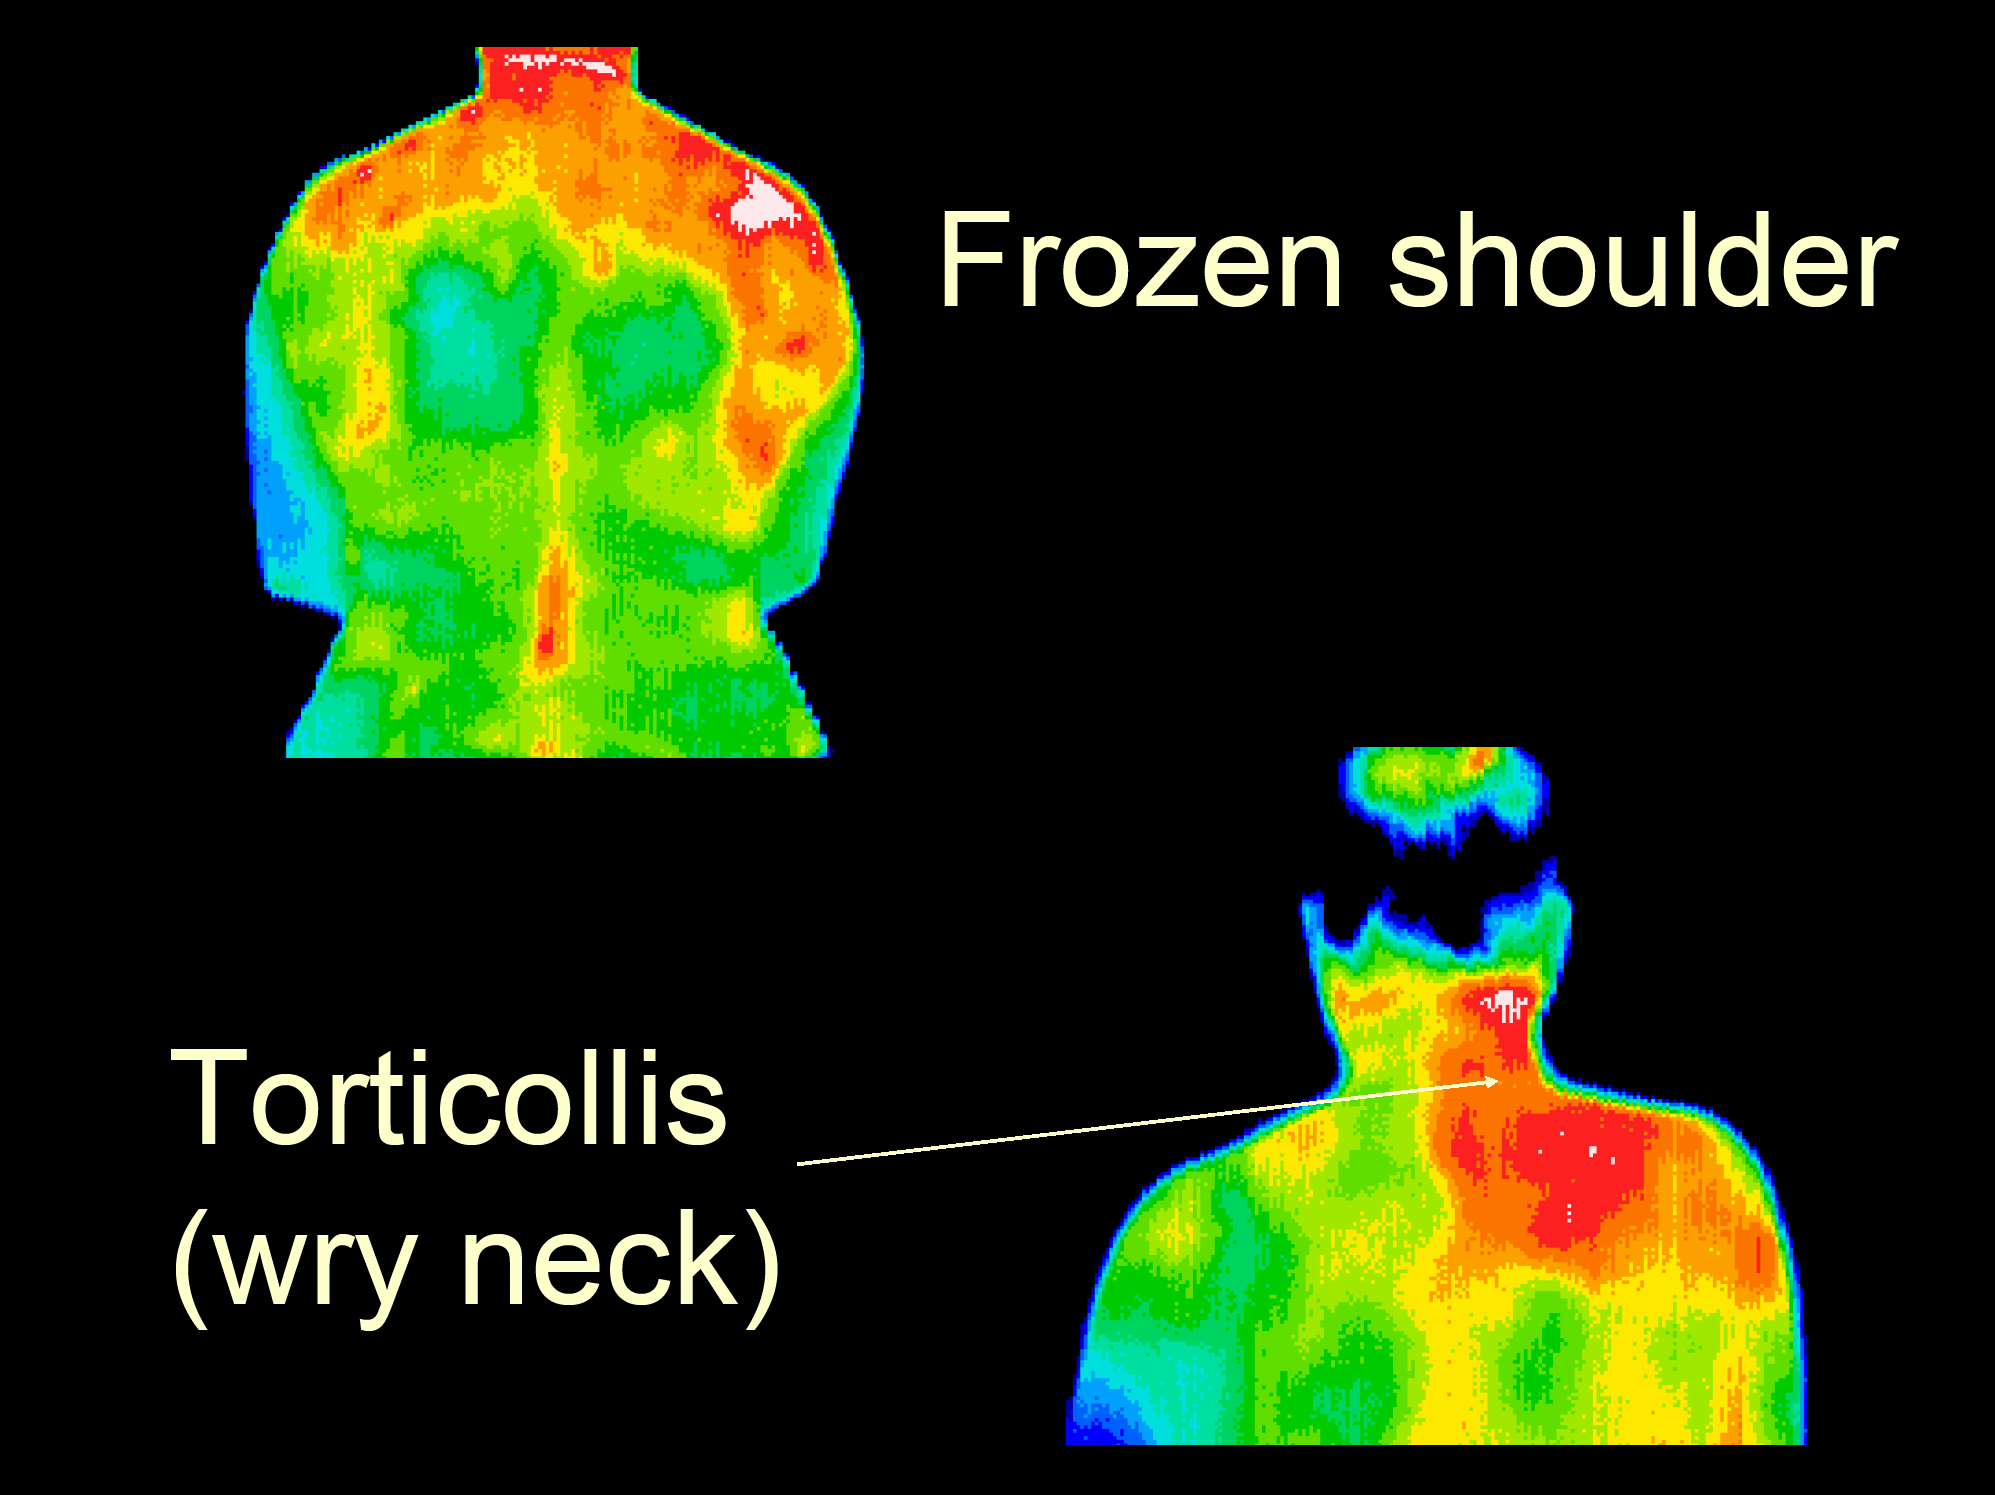 26 Torticollis, frozen shoulder